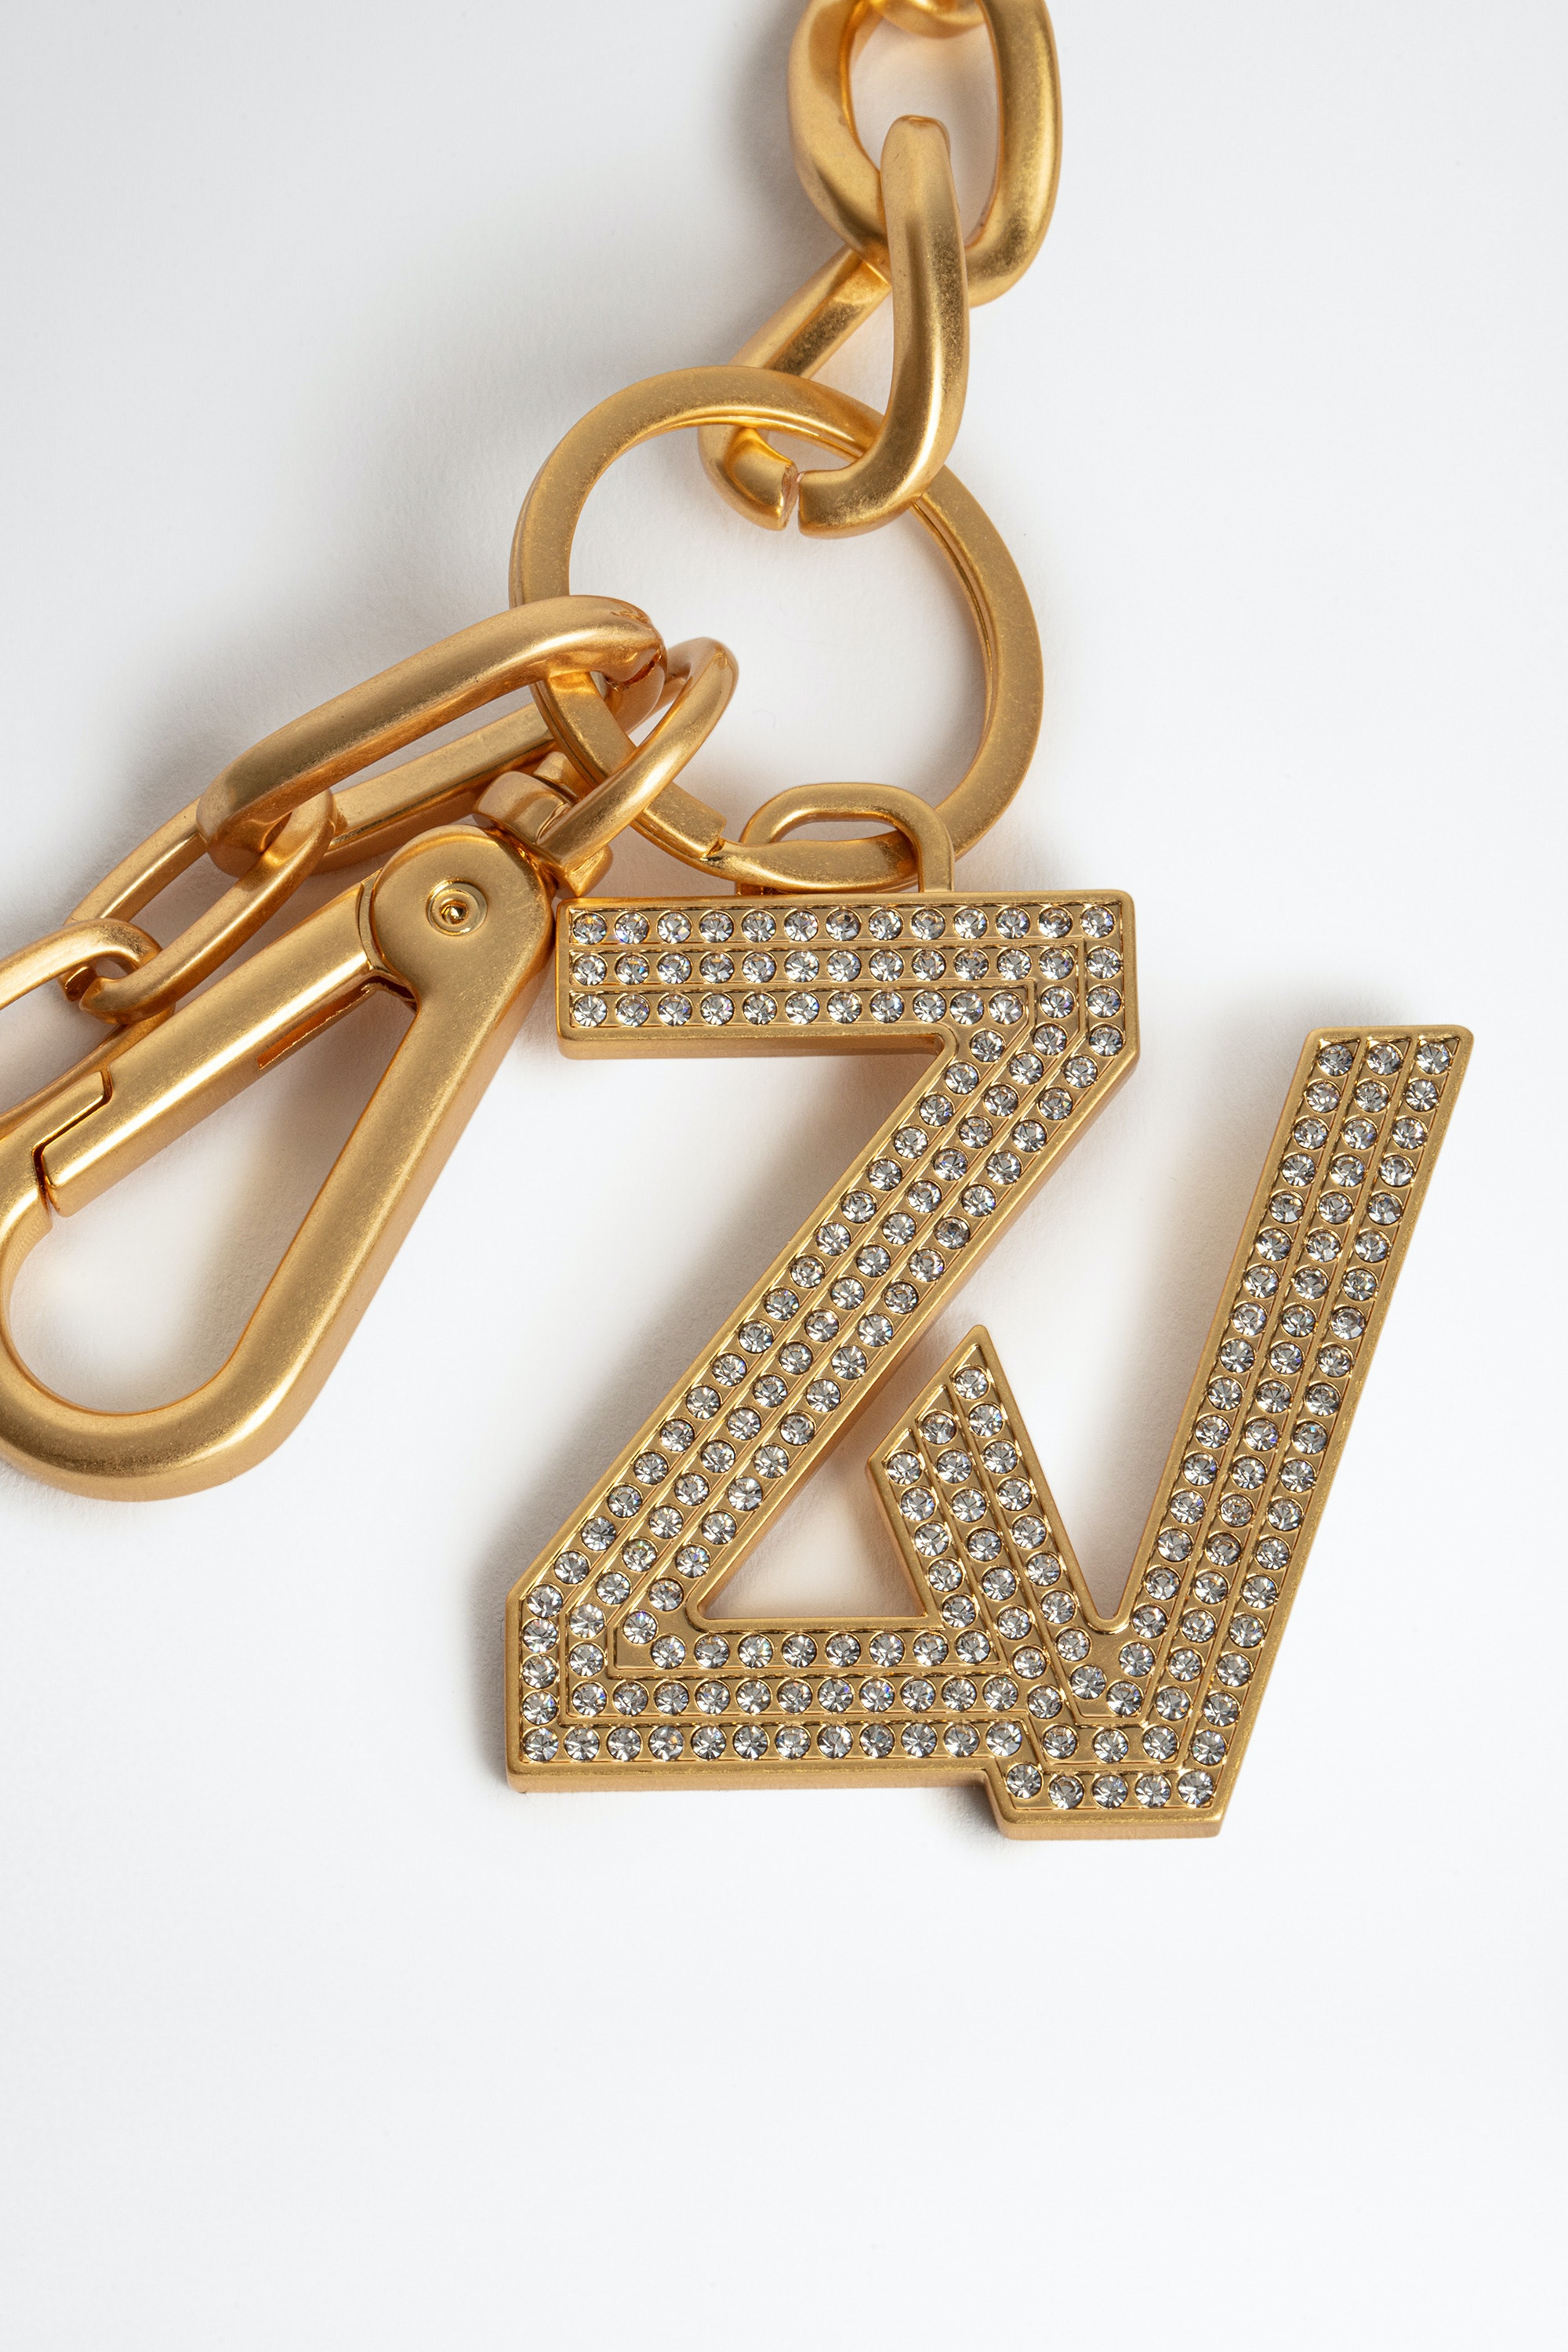 Llavero ZV Initiale Le Keyring Strass